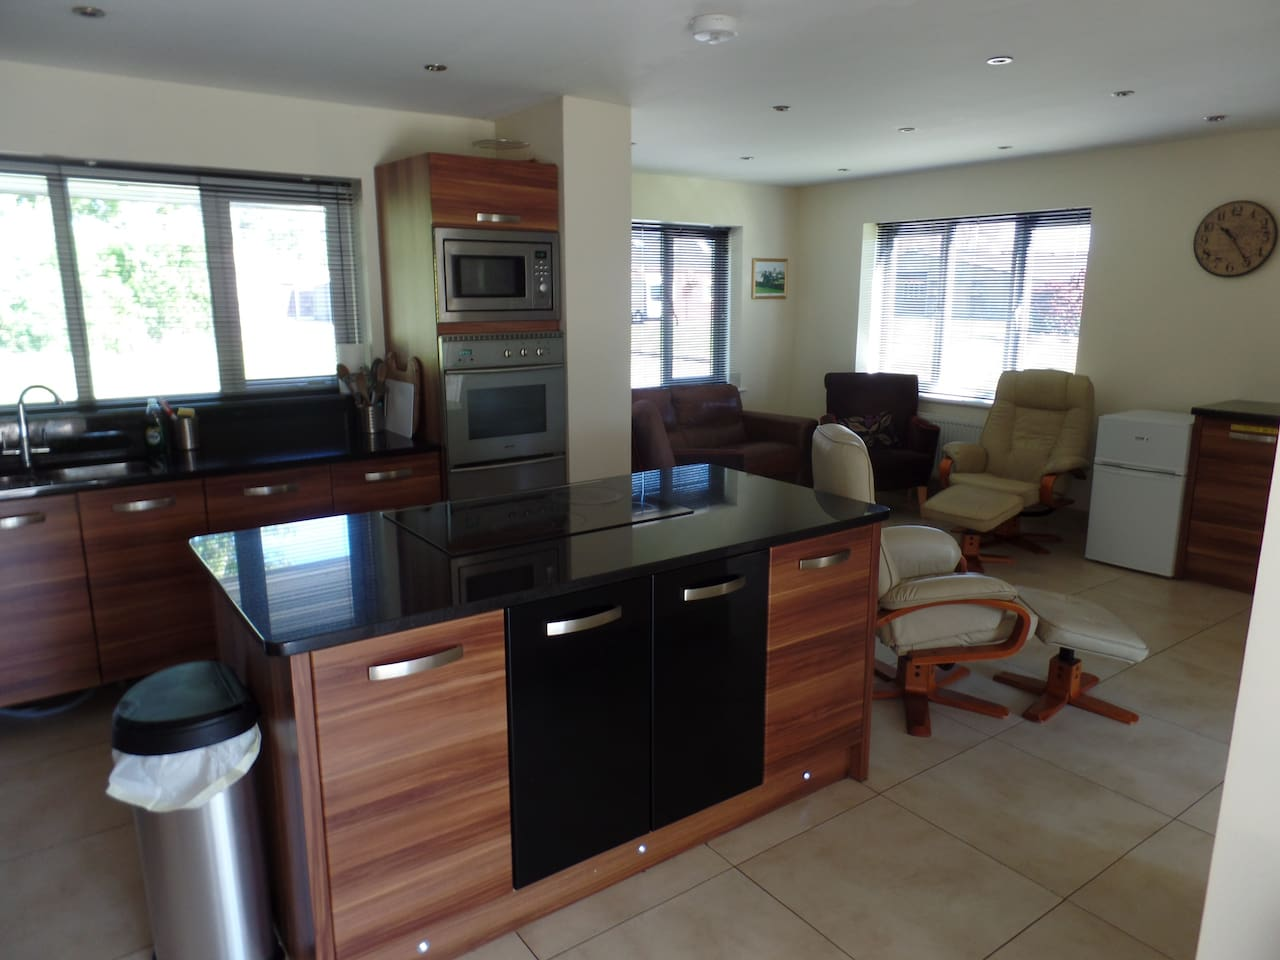 Time to Cook , kitchen open to guests from 6am to 9pm each room has its own fridge or fridge freezer